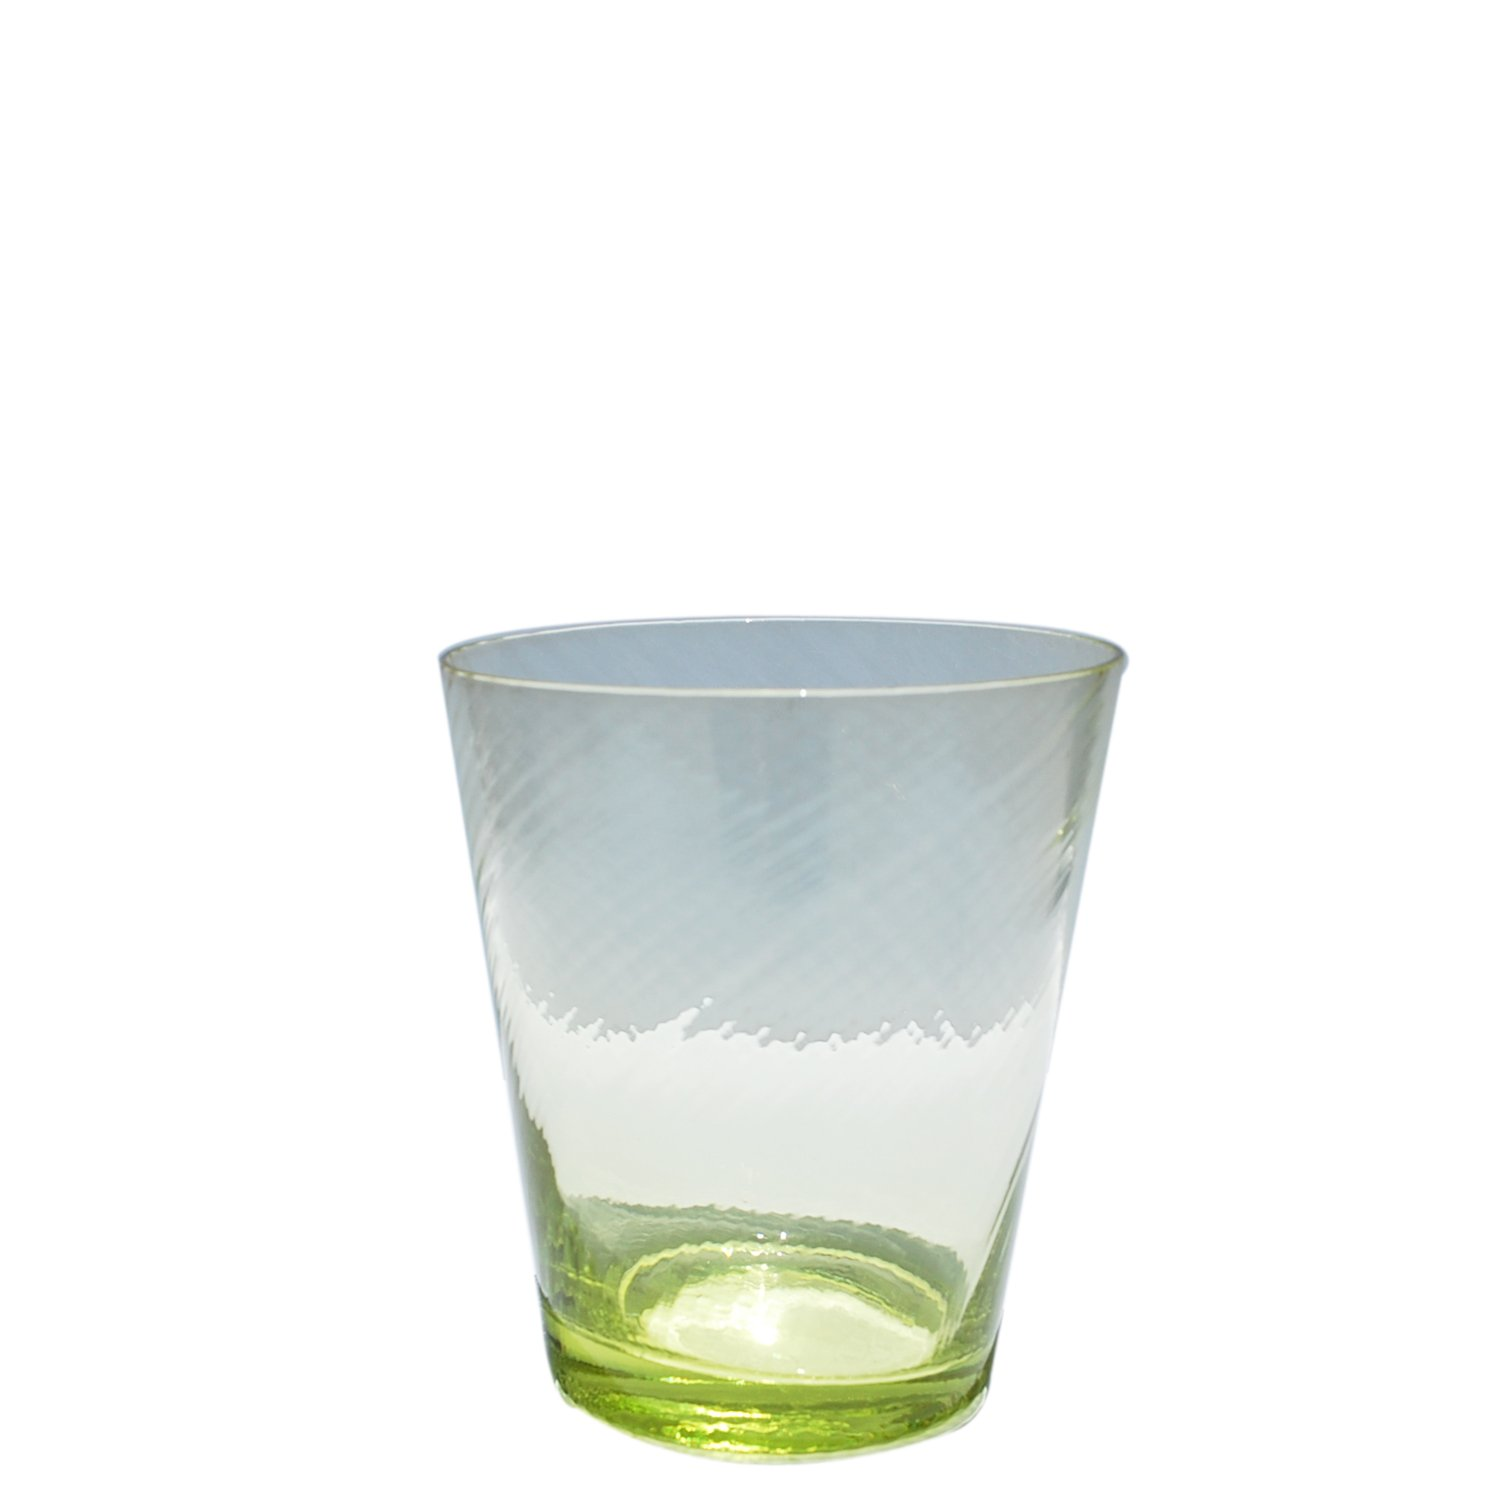 Impulse! Set of 4 Roma Rocks Glasses, Green, 11-Oz. impulse d7 0